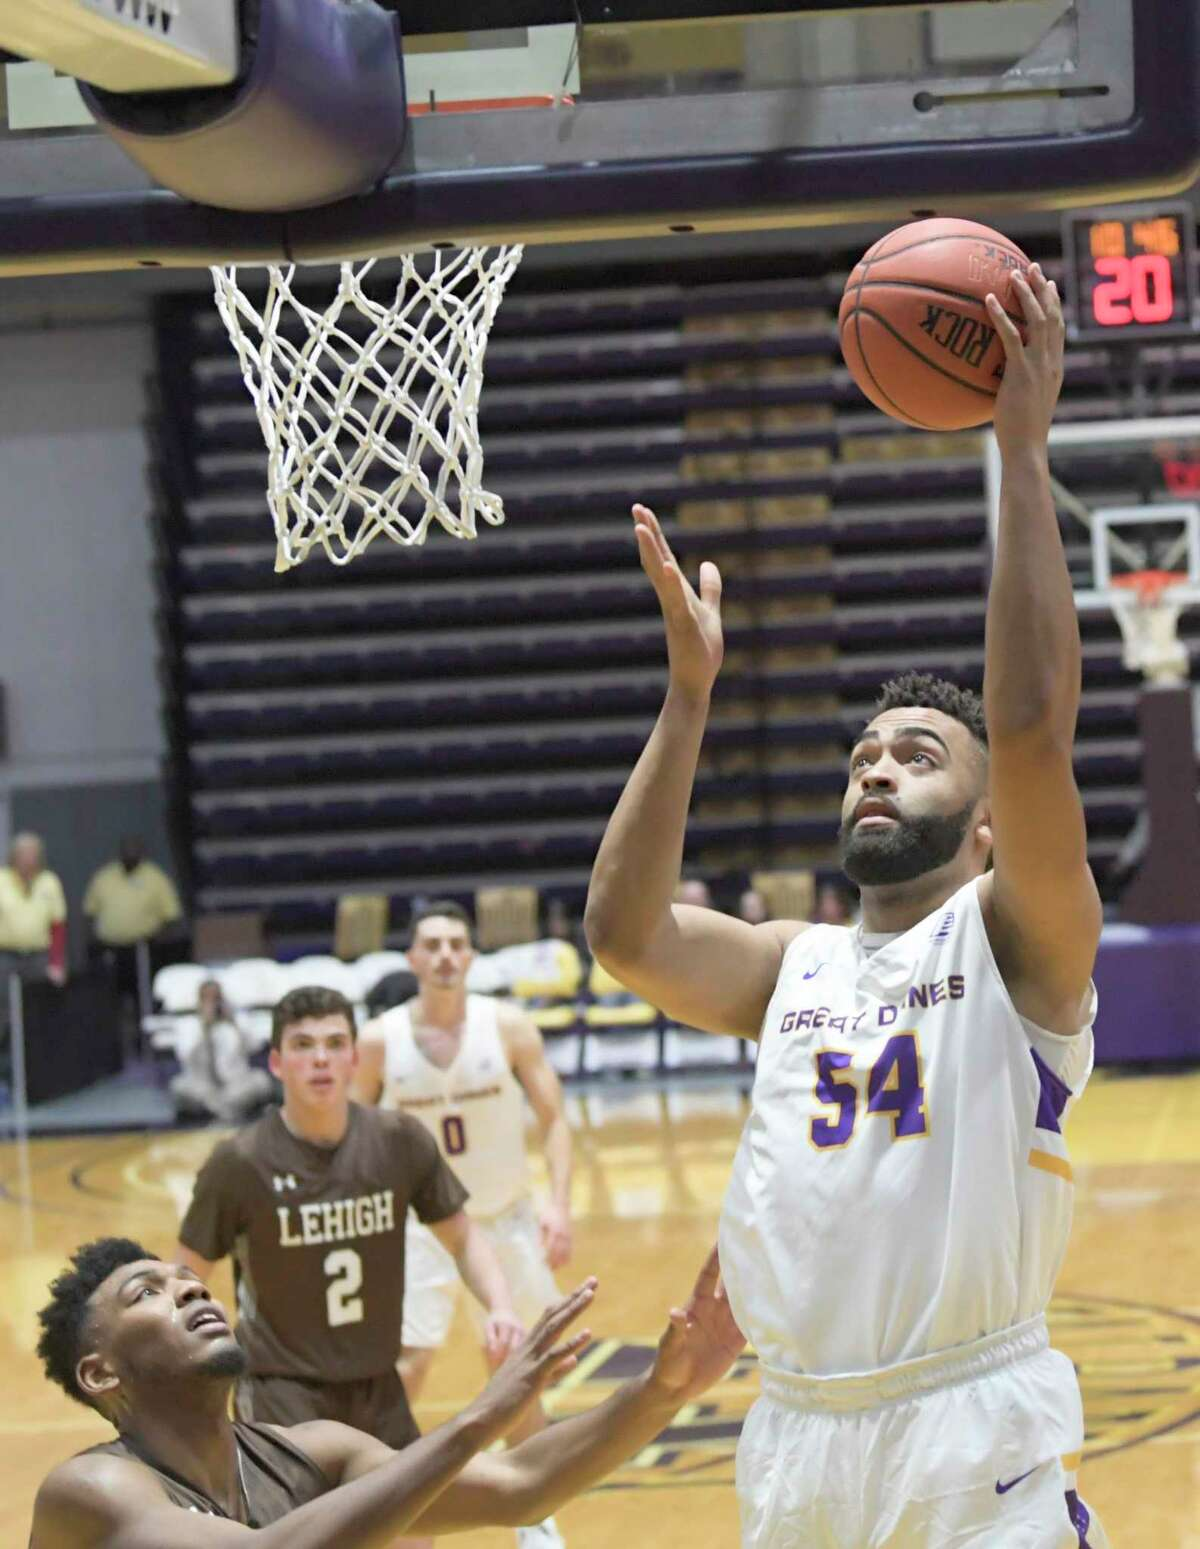 University at Albany forward Kendall Lauderdale (54) scores against Lehigh during the second half of their home opener NCAA basketball game Saturday, Nov. 9, 2019, in Albany, N.Y. Lehigh won 74-70.